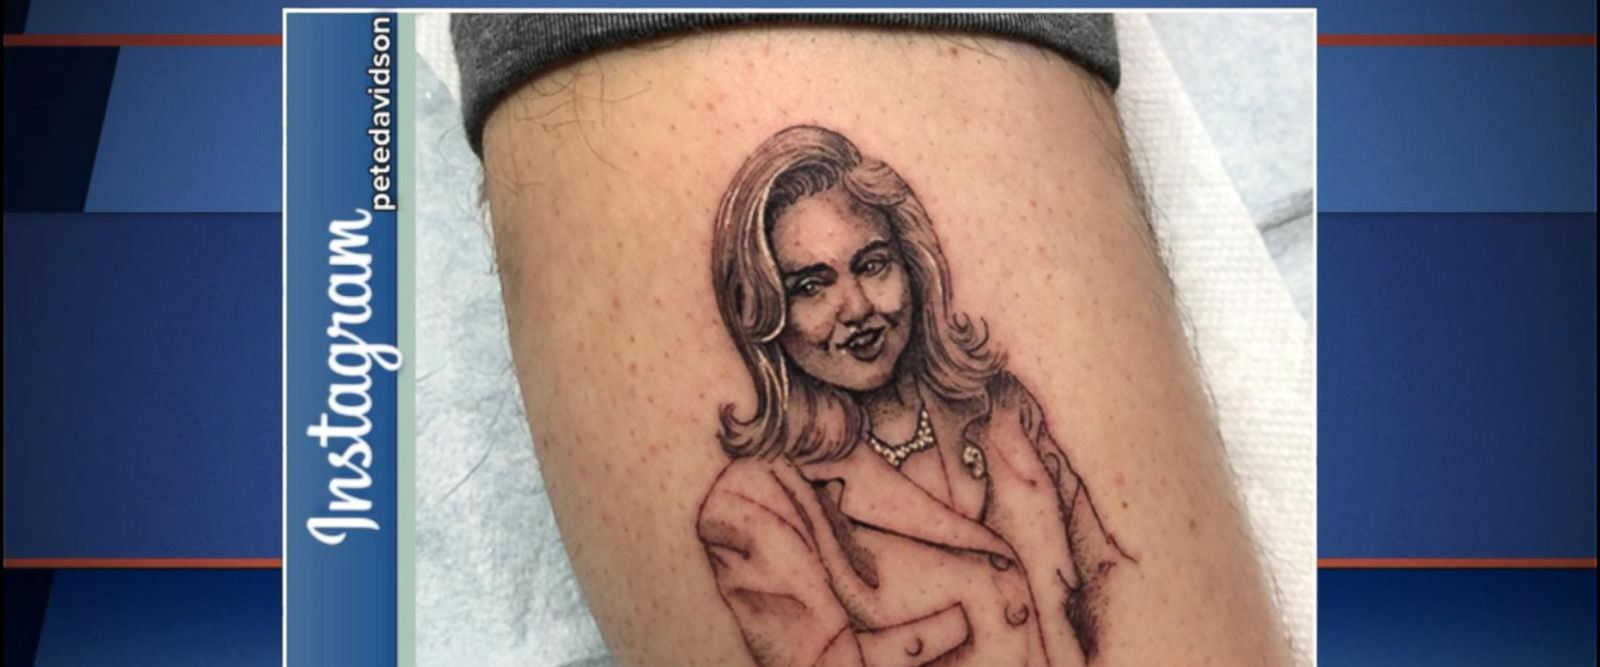 VIDEO: The outspoken Hillary Clinton supporter posted a photo of the permanent ink.